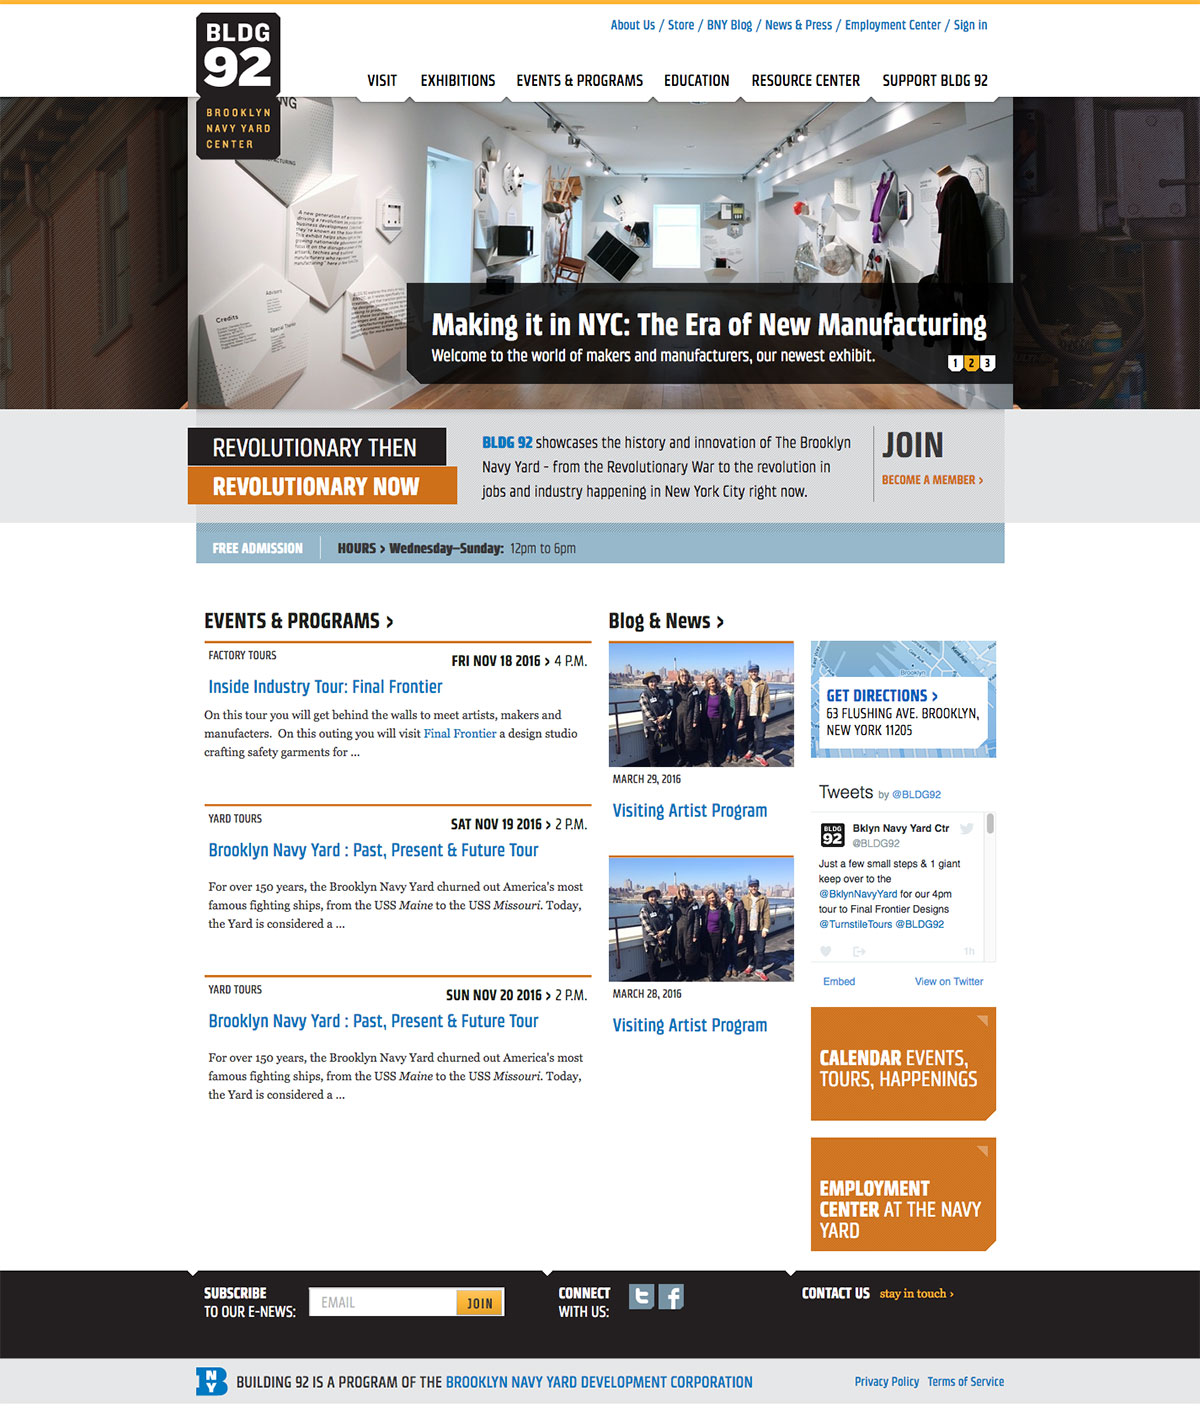 BROOKLYN NAVY YARD CENTER AT BLDG92 website